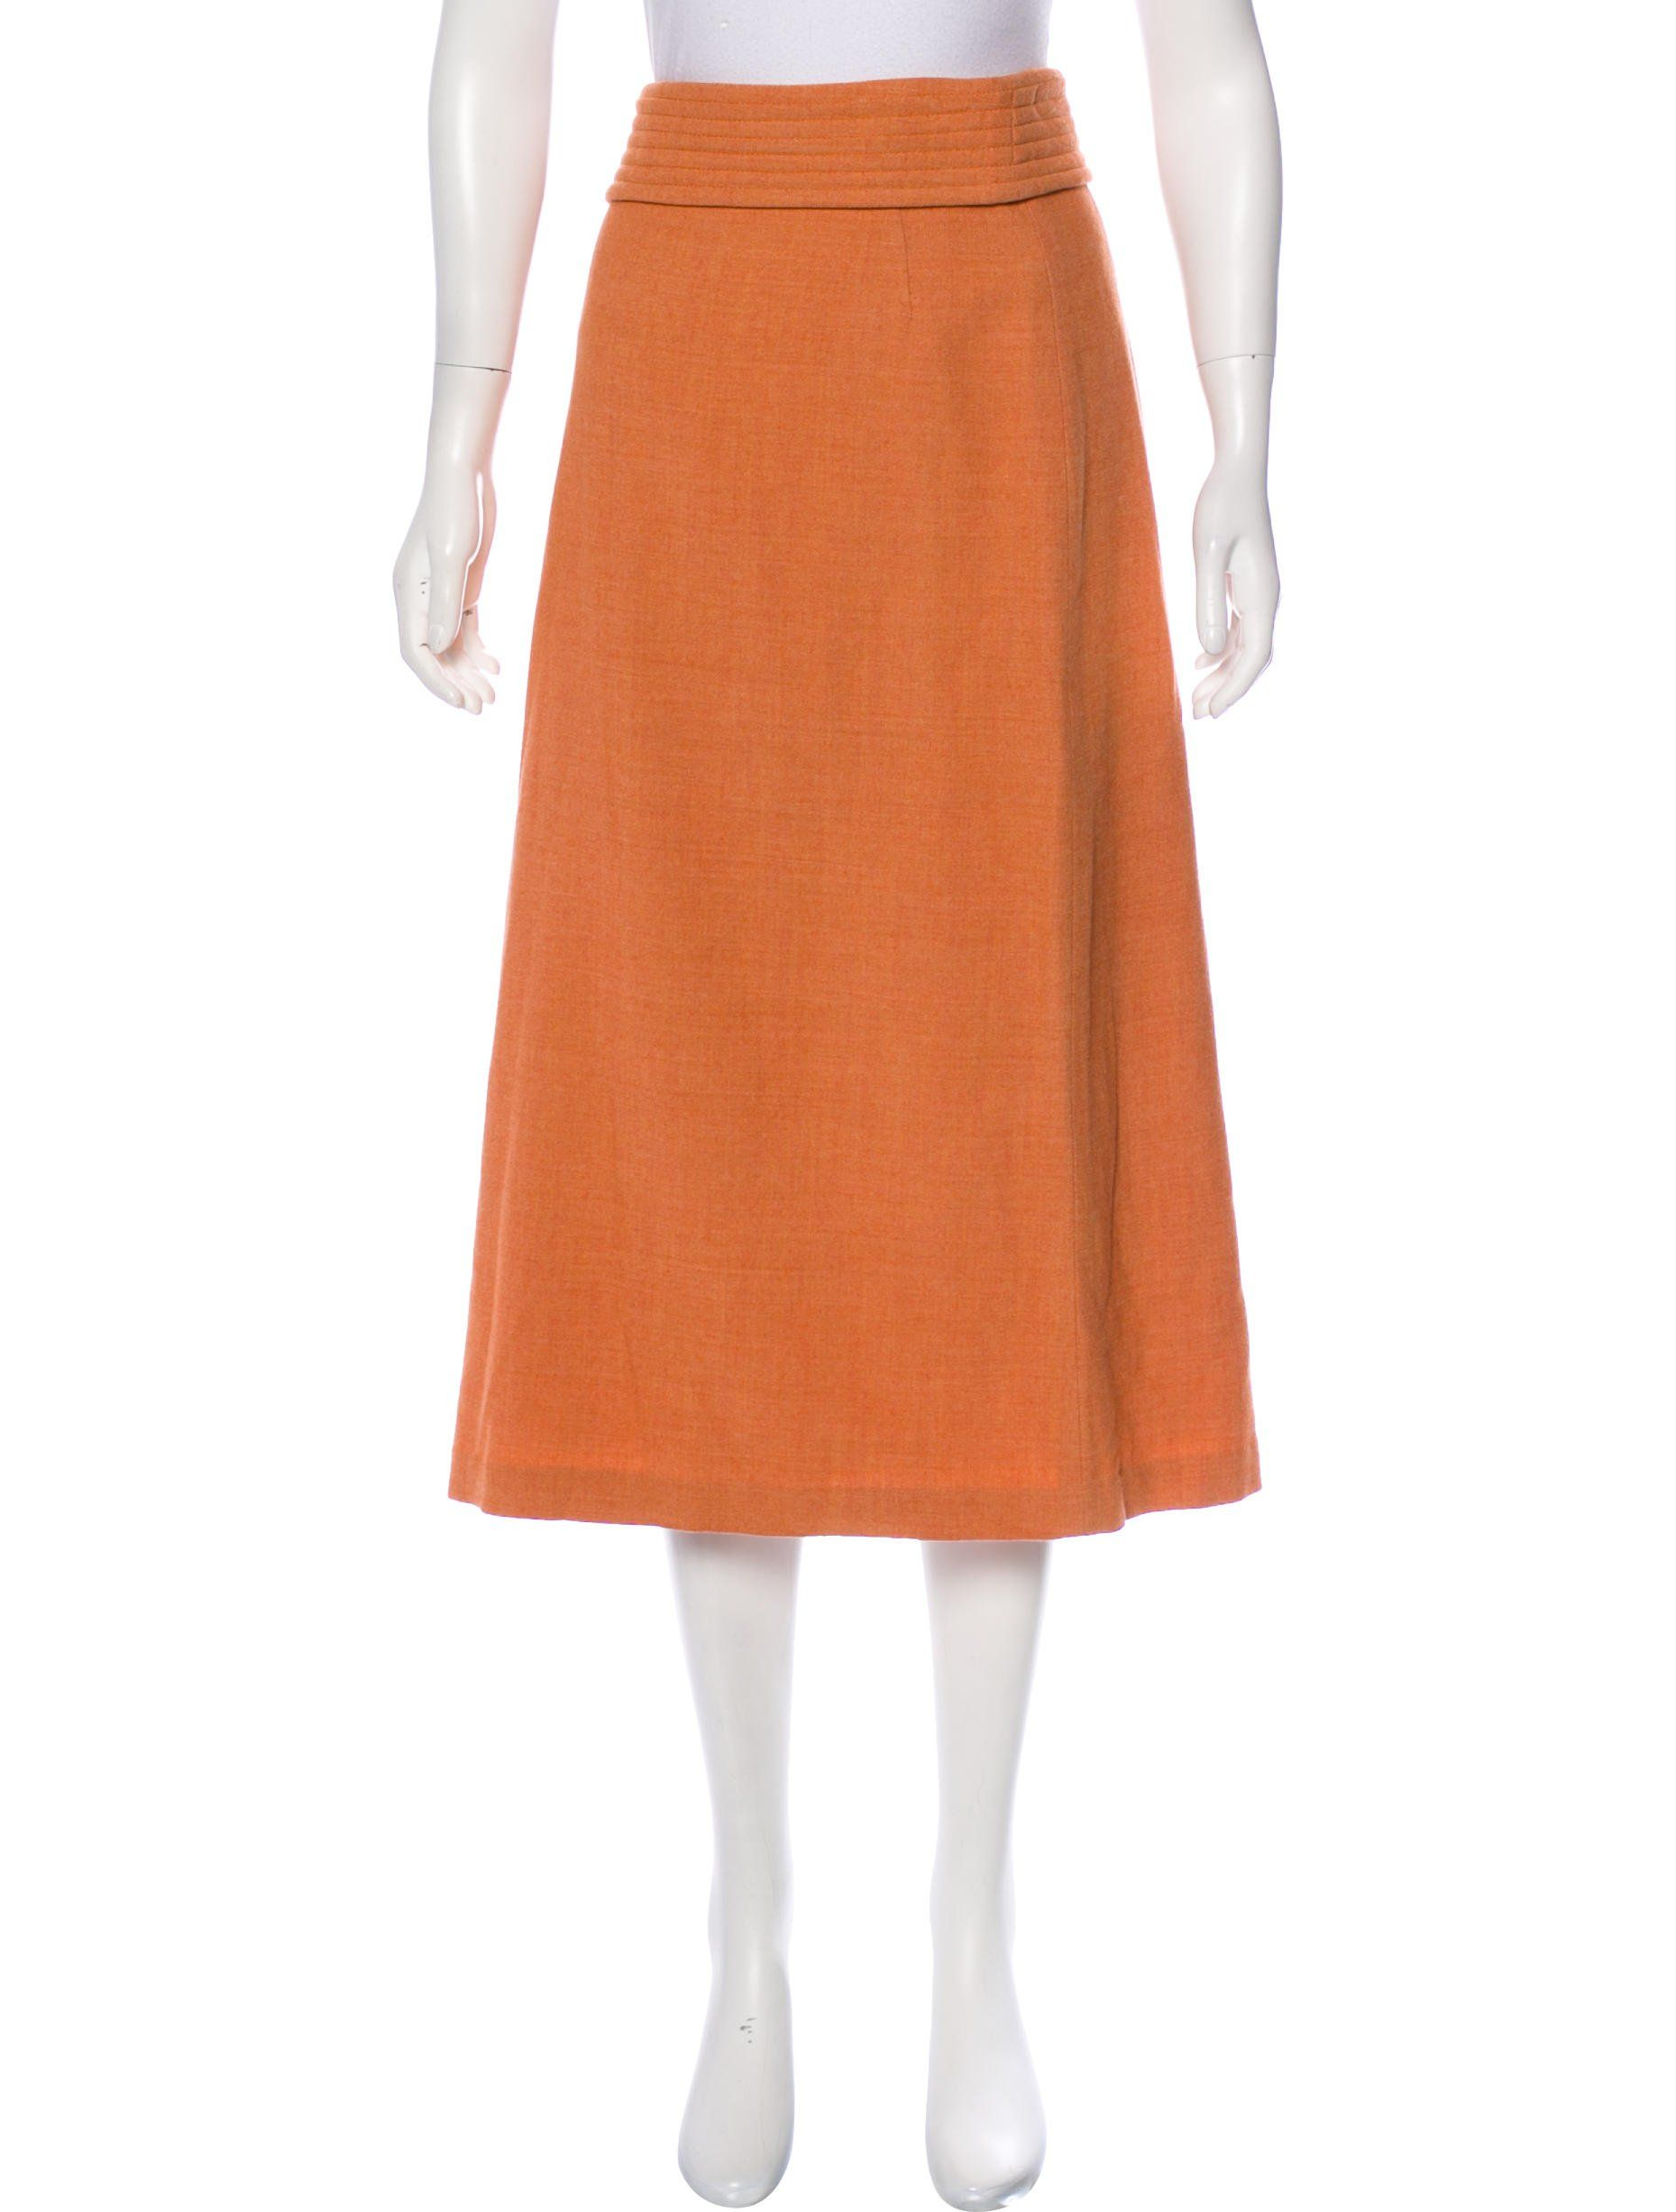 732b56da0bdc Orange Dries Van Noten A-line midi skirt with tonal stitching throughout,  pleated overlay at waist and concealed zip closure at back.